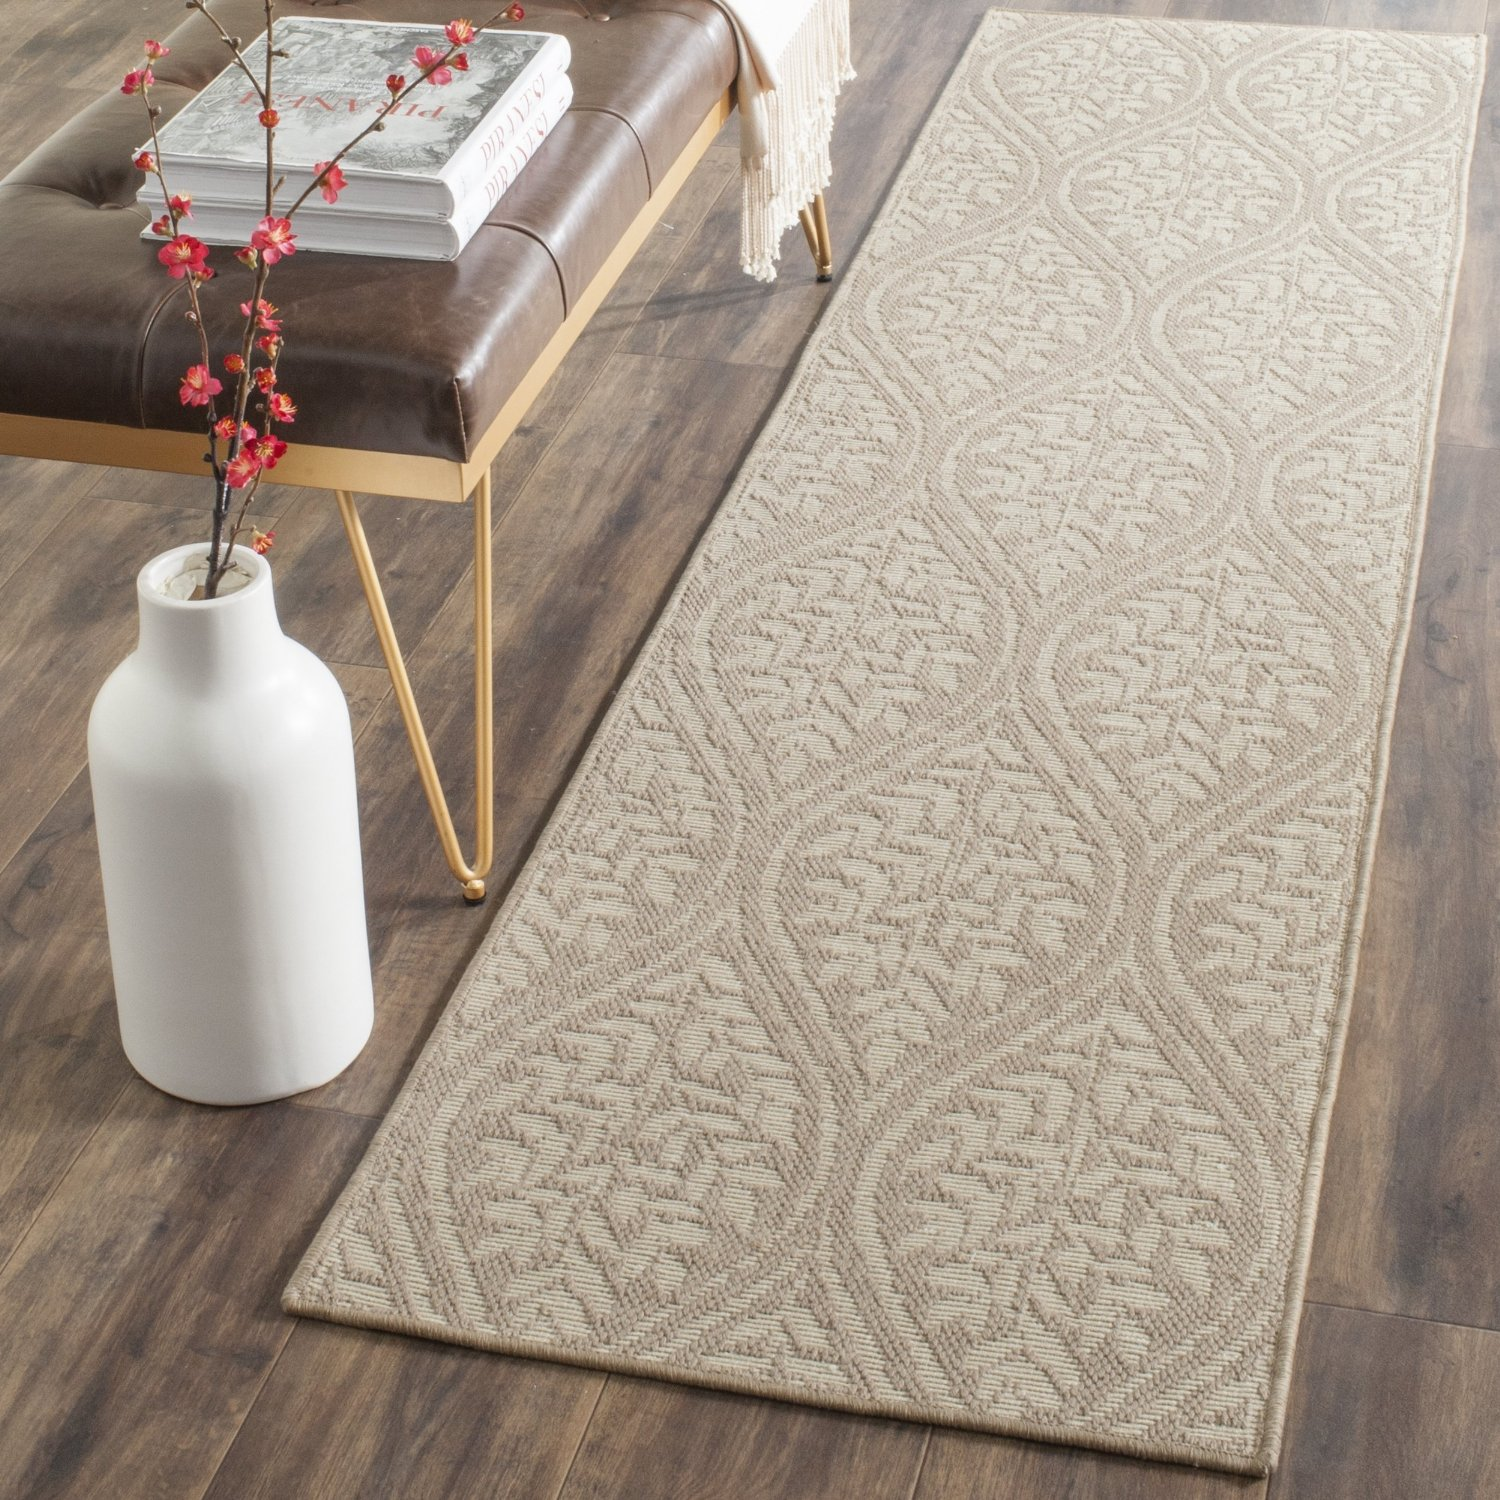 Safavieh Palm Beach Collection PAB515A Hand Woven Sand and Natural Jute Runner (2' x 8')